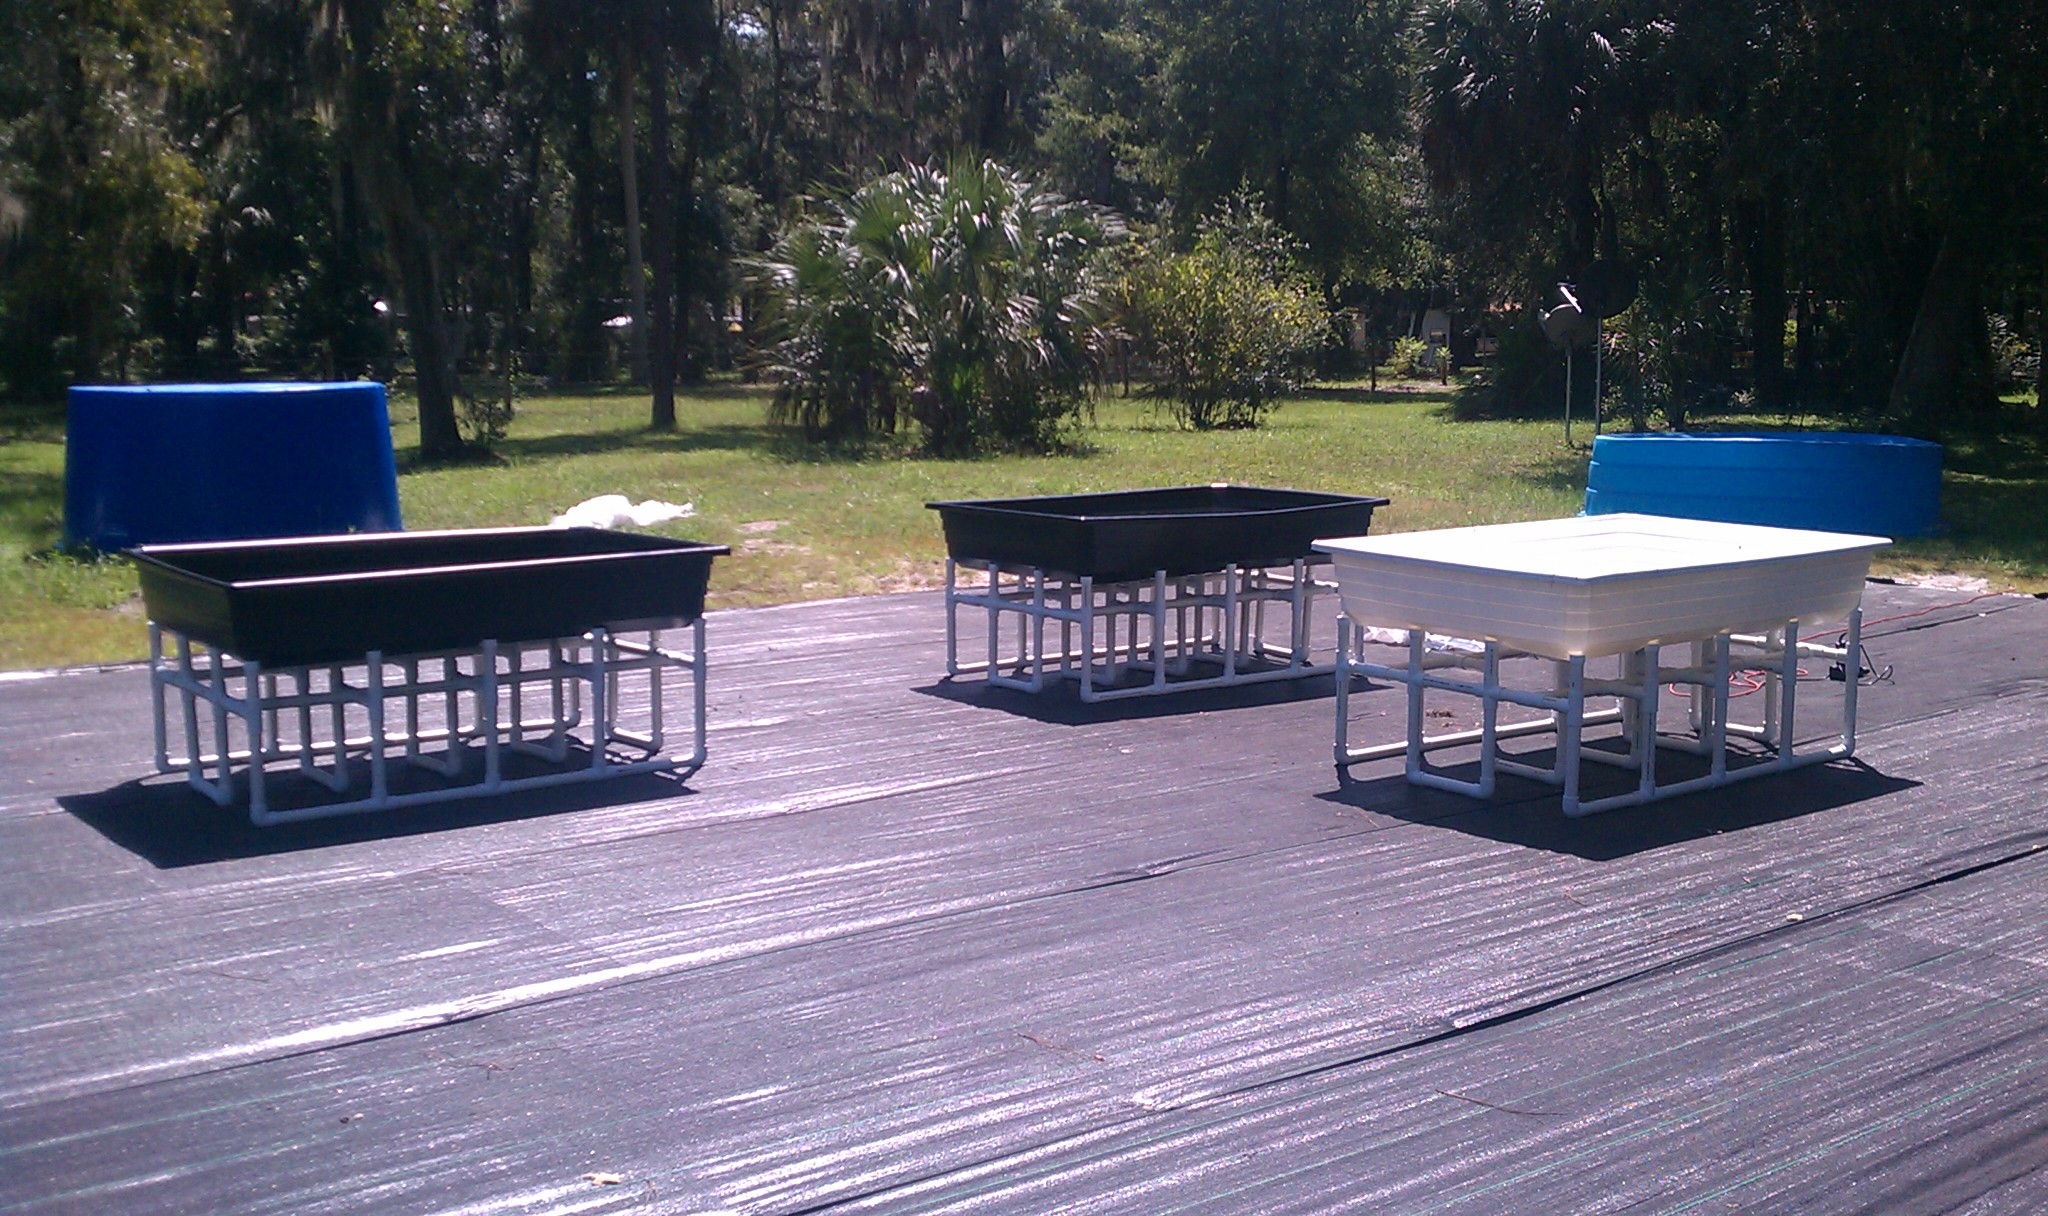 Our new aquaponics grow bed systems easyponixeasyponix for Hydroponic grow bed